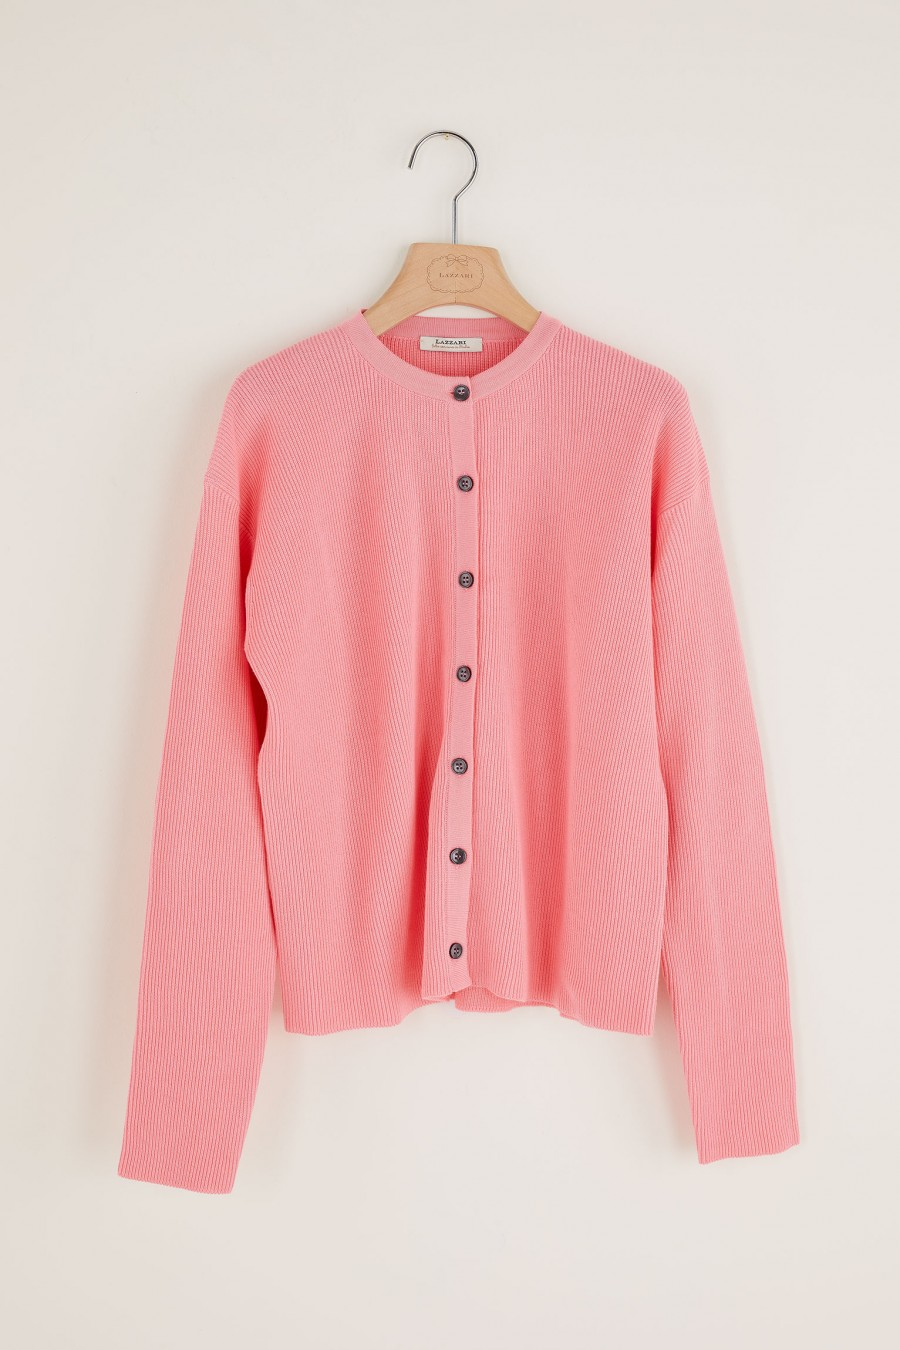 pink cardigan with buttons